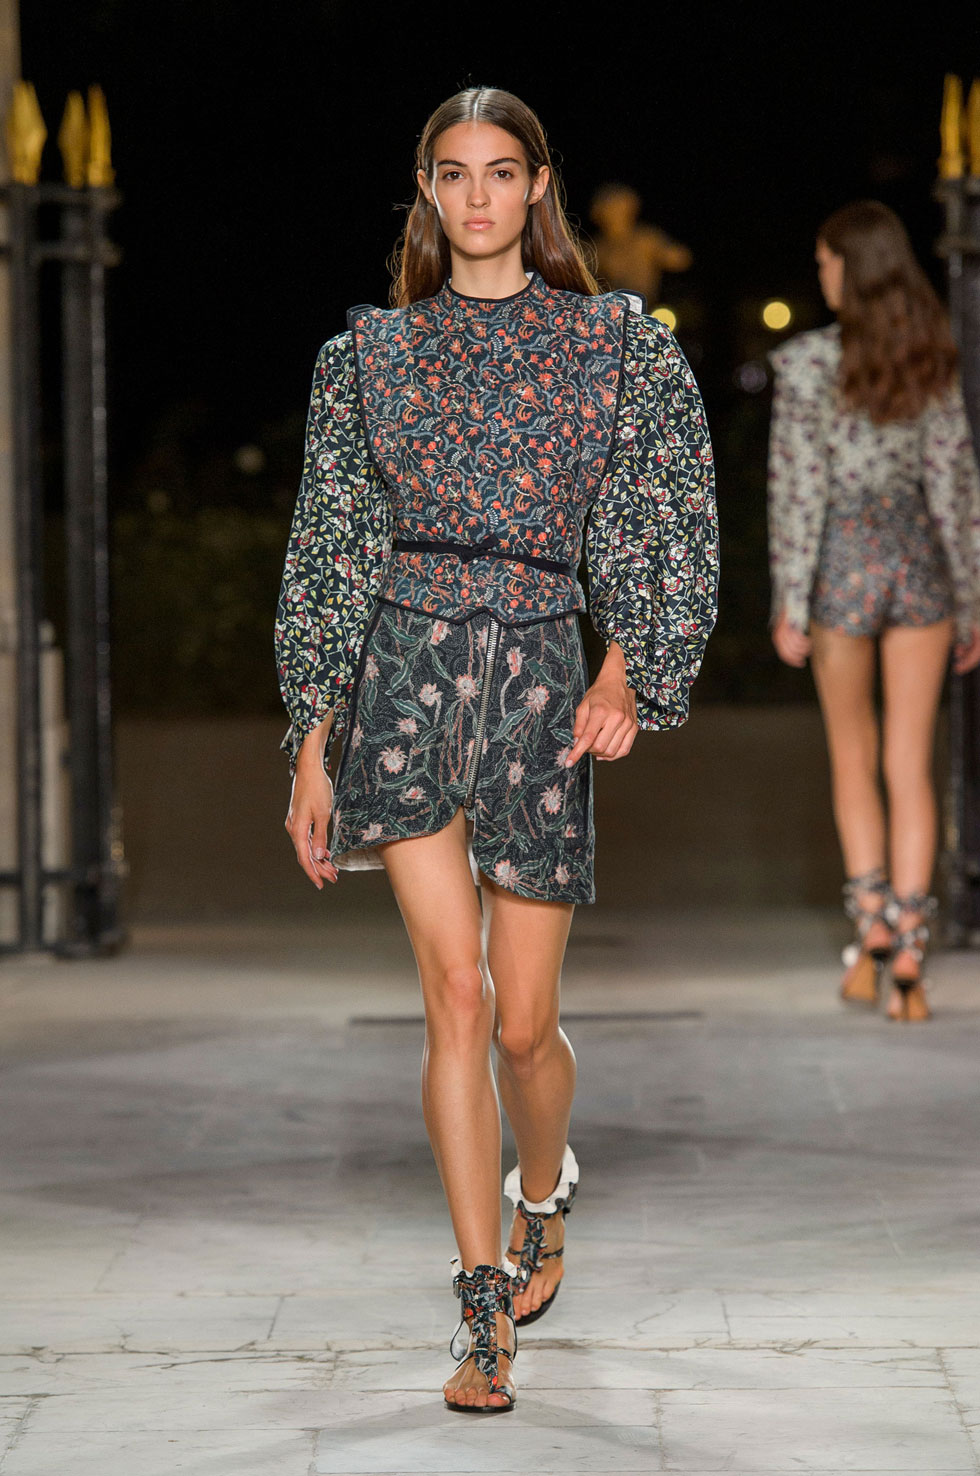 39 Looks From the Isabel Marant Spring 2017 Show Isabel Marant Runway Show at Paris Fashion Week